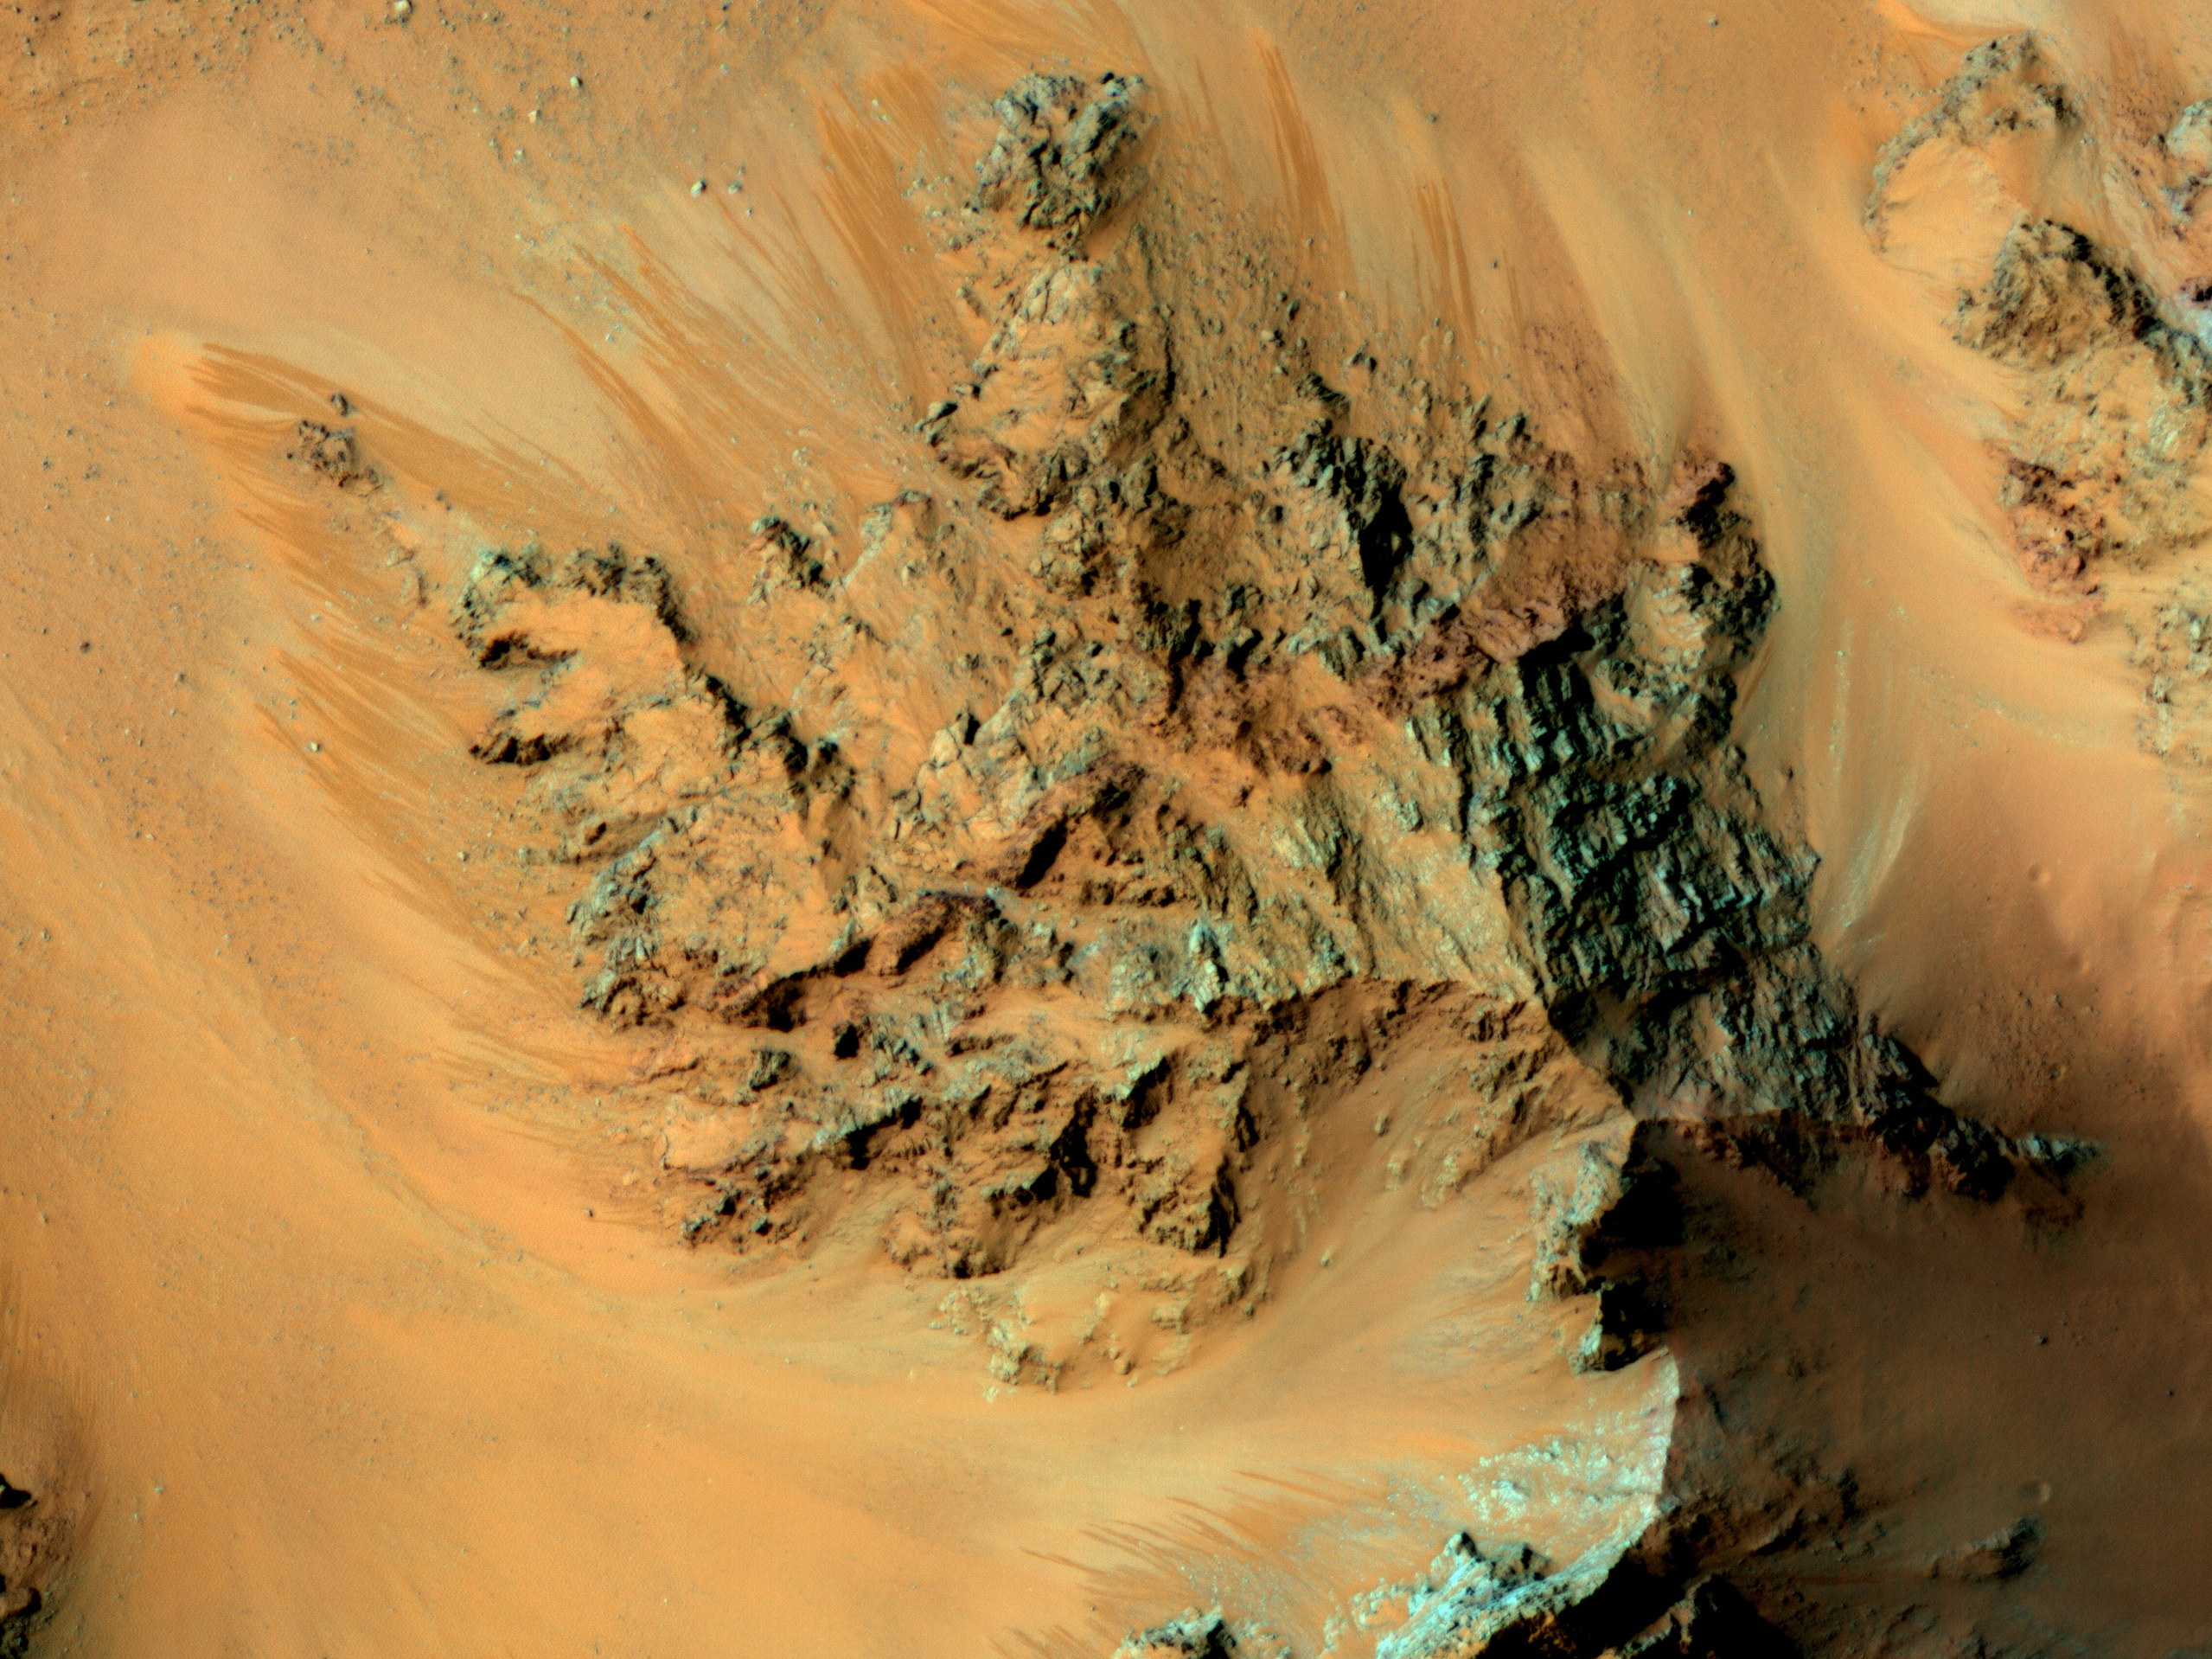 Scientists Confirm There's Water In The Dark Streaks On Mars